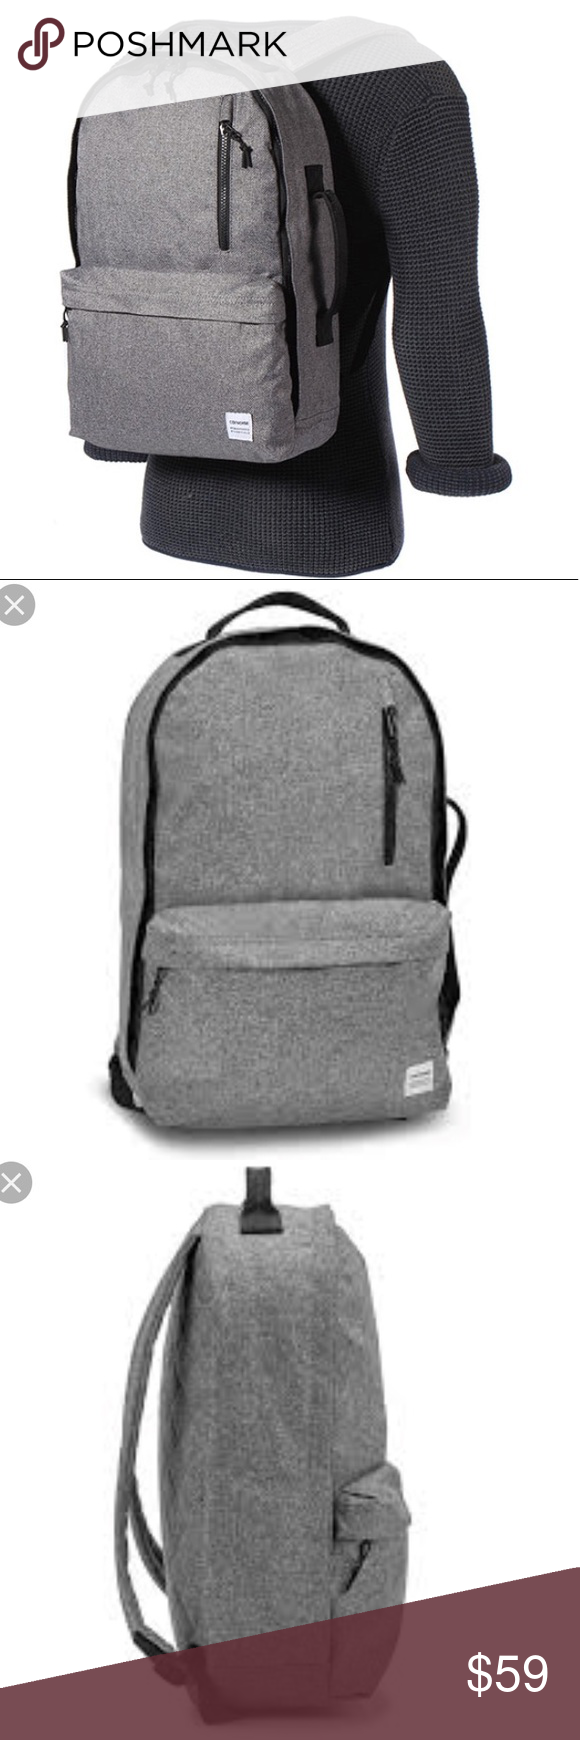 NWTConverse Original Backpack Charcoal Grey Unisex Brand new with tag.  Price is firm! No 319959b7aca46